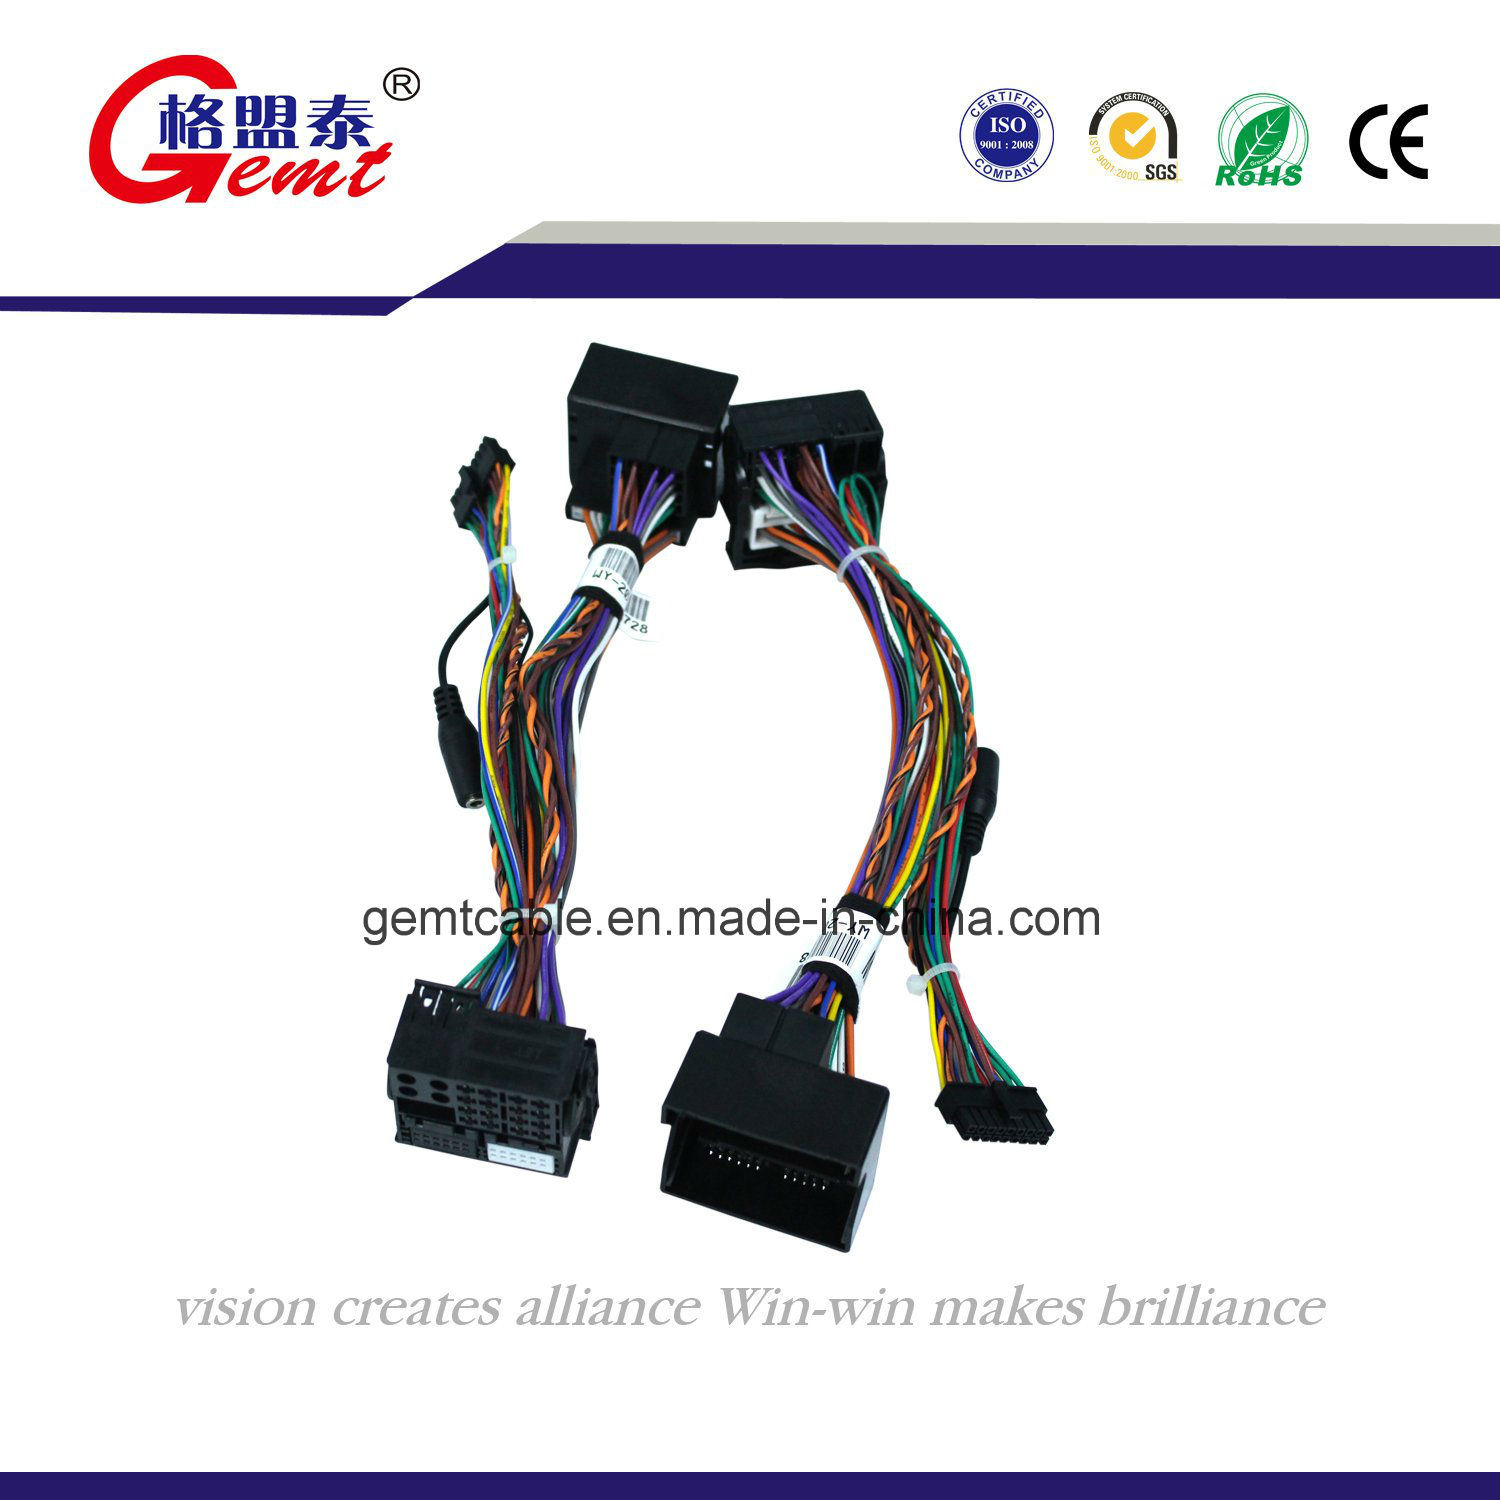 Wiring Harness Manufacturer Psa Diagram Manufacturers China Peugeot Citroen Extension Cord Photos Cable Assembly